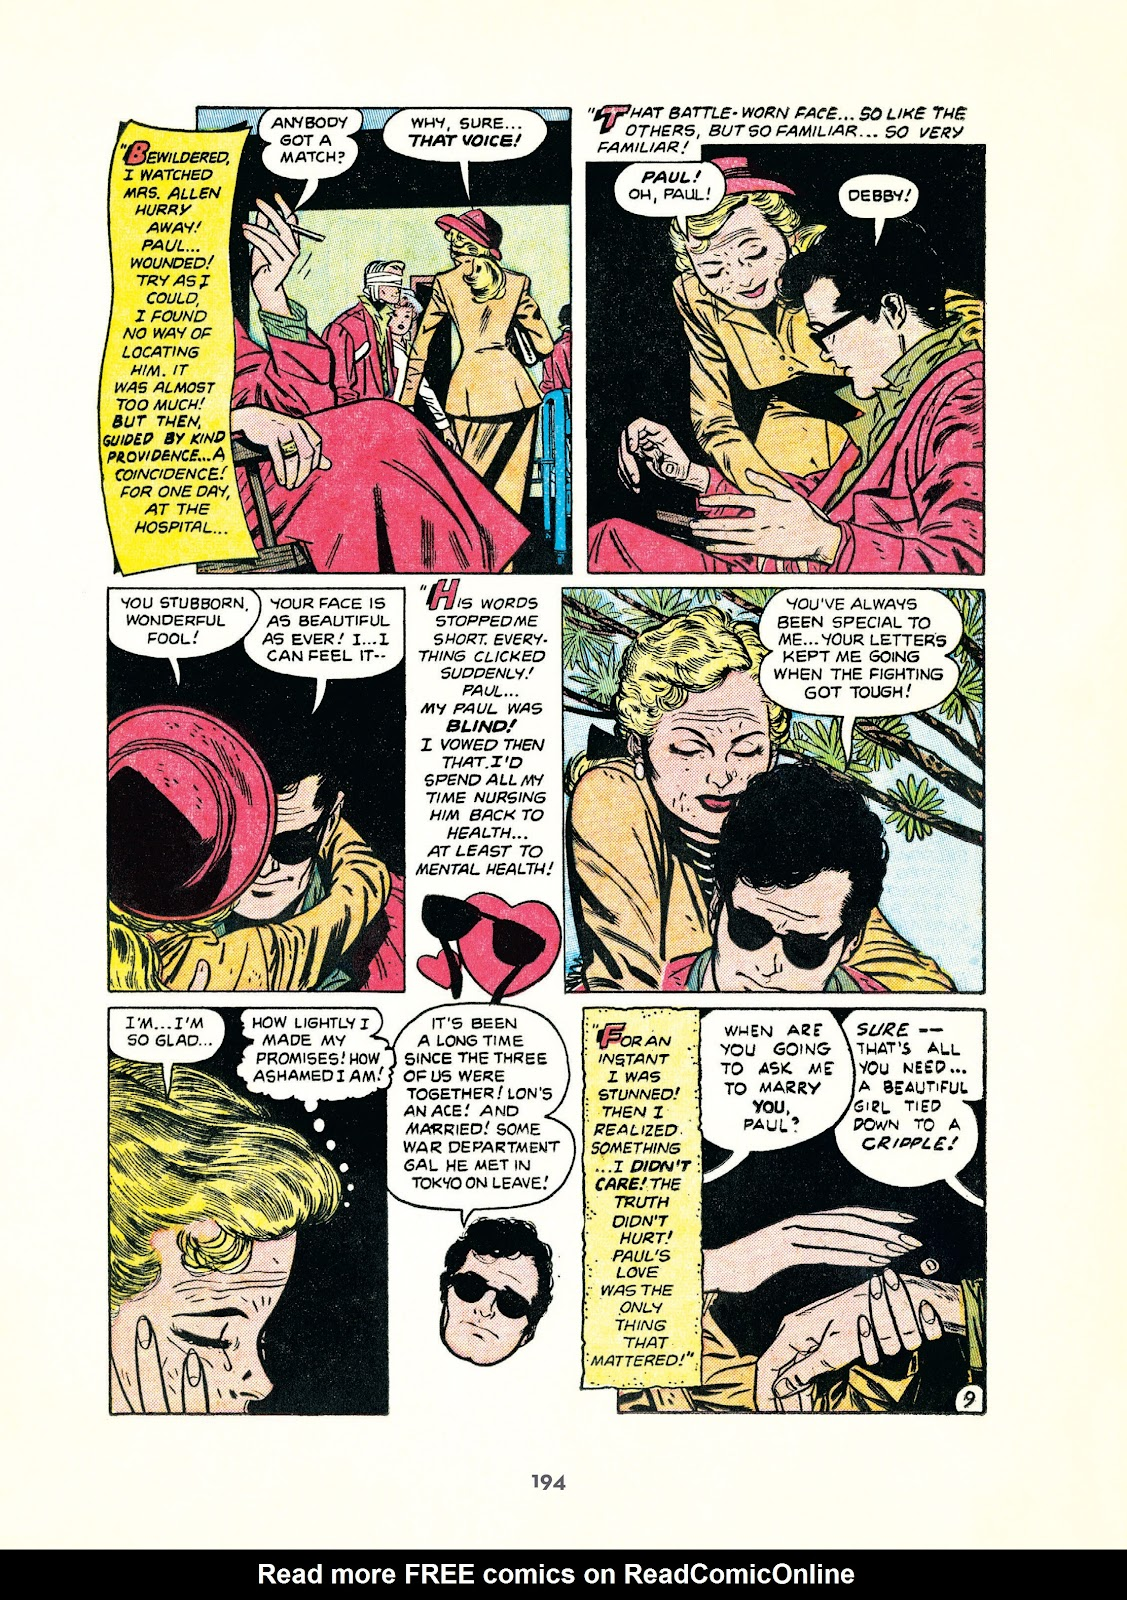 Read online Setting the Standard: Comics by Alex Toth 1952-1954 comic -  Issue # TPB (Part 2) - 95